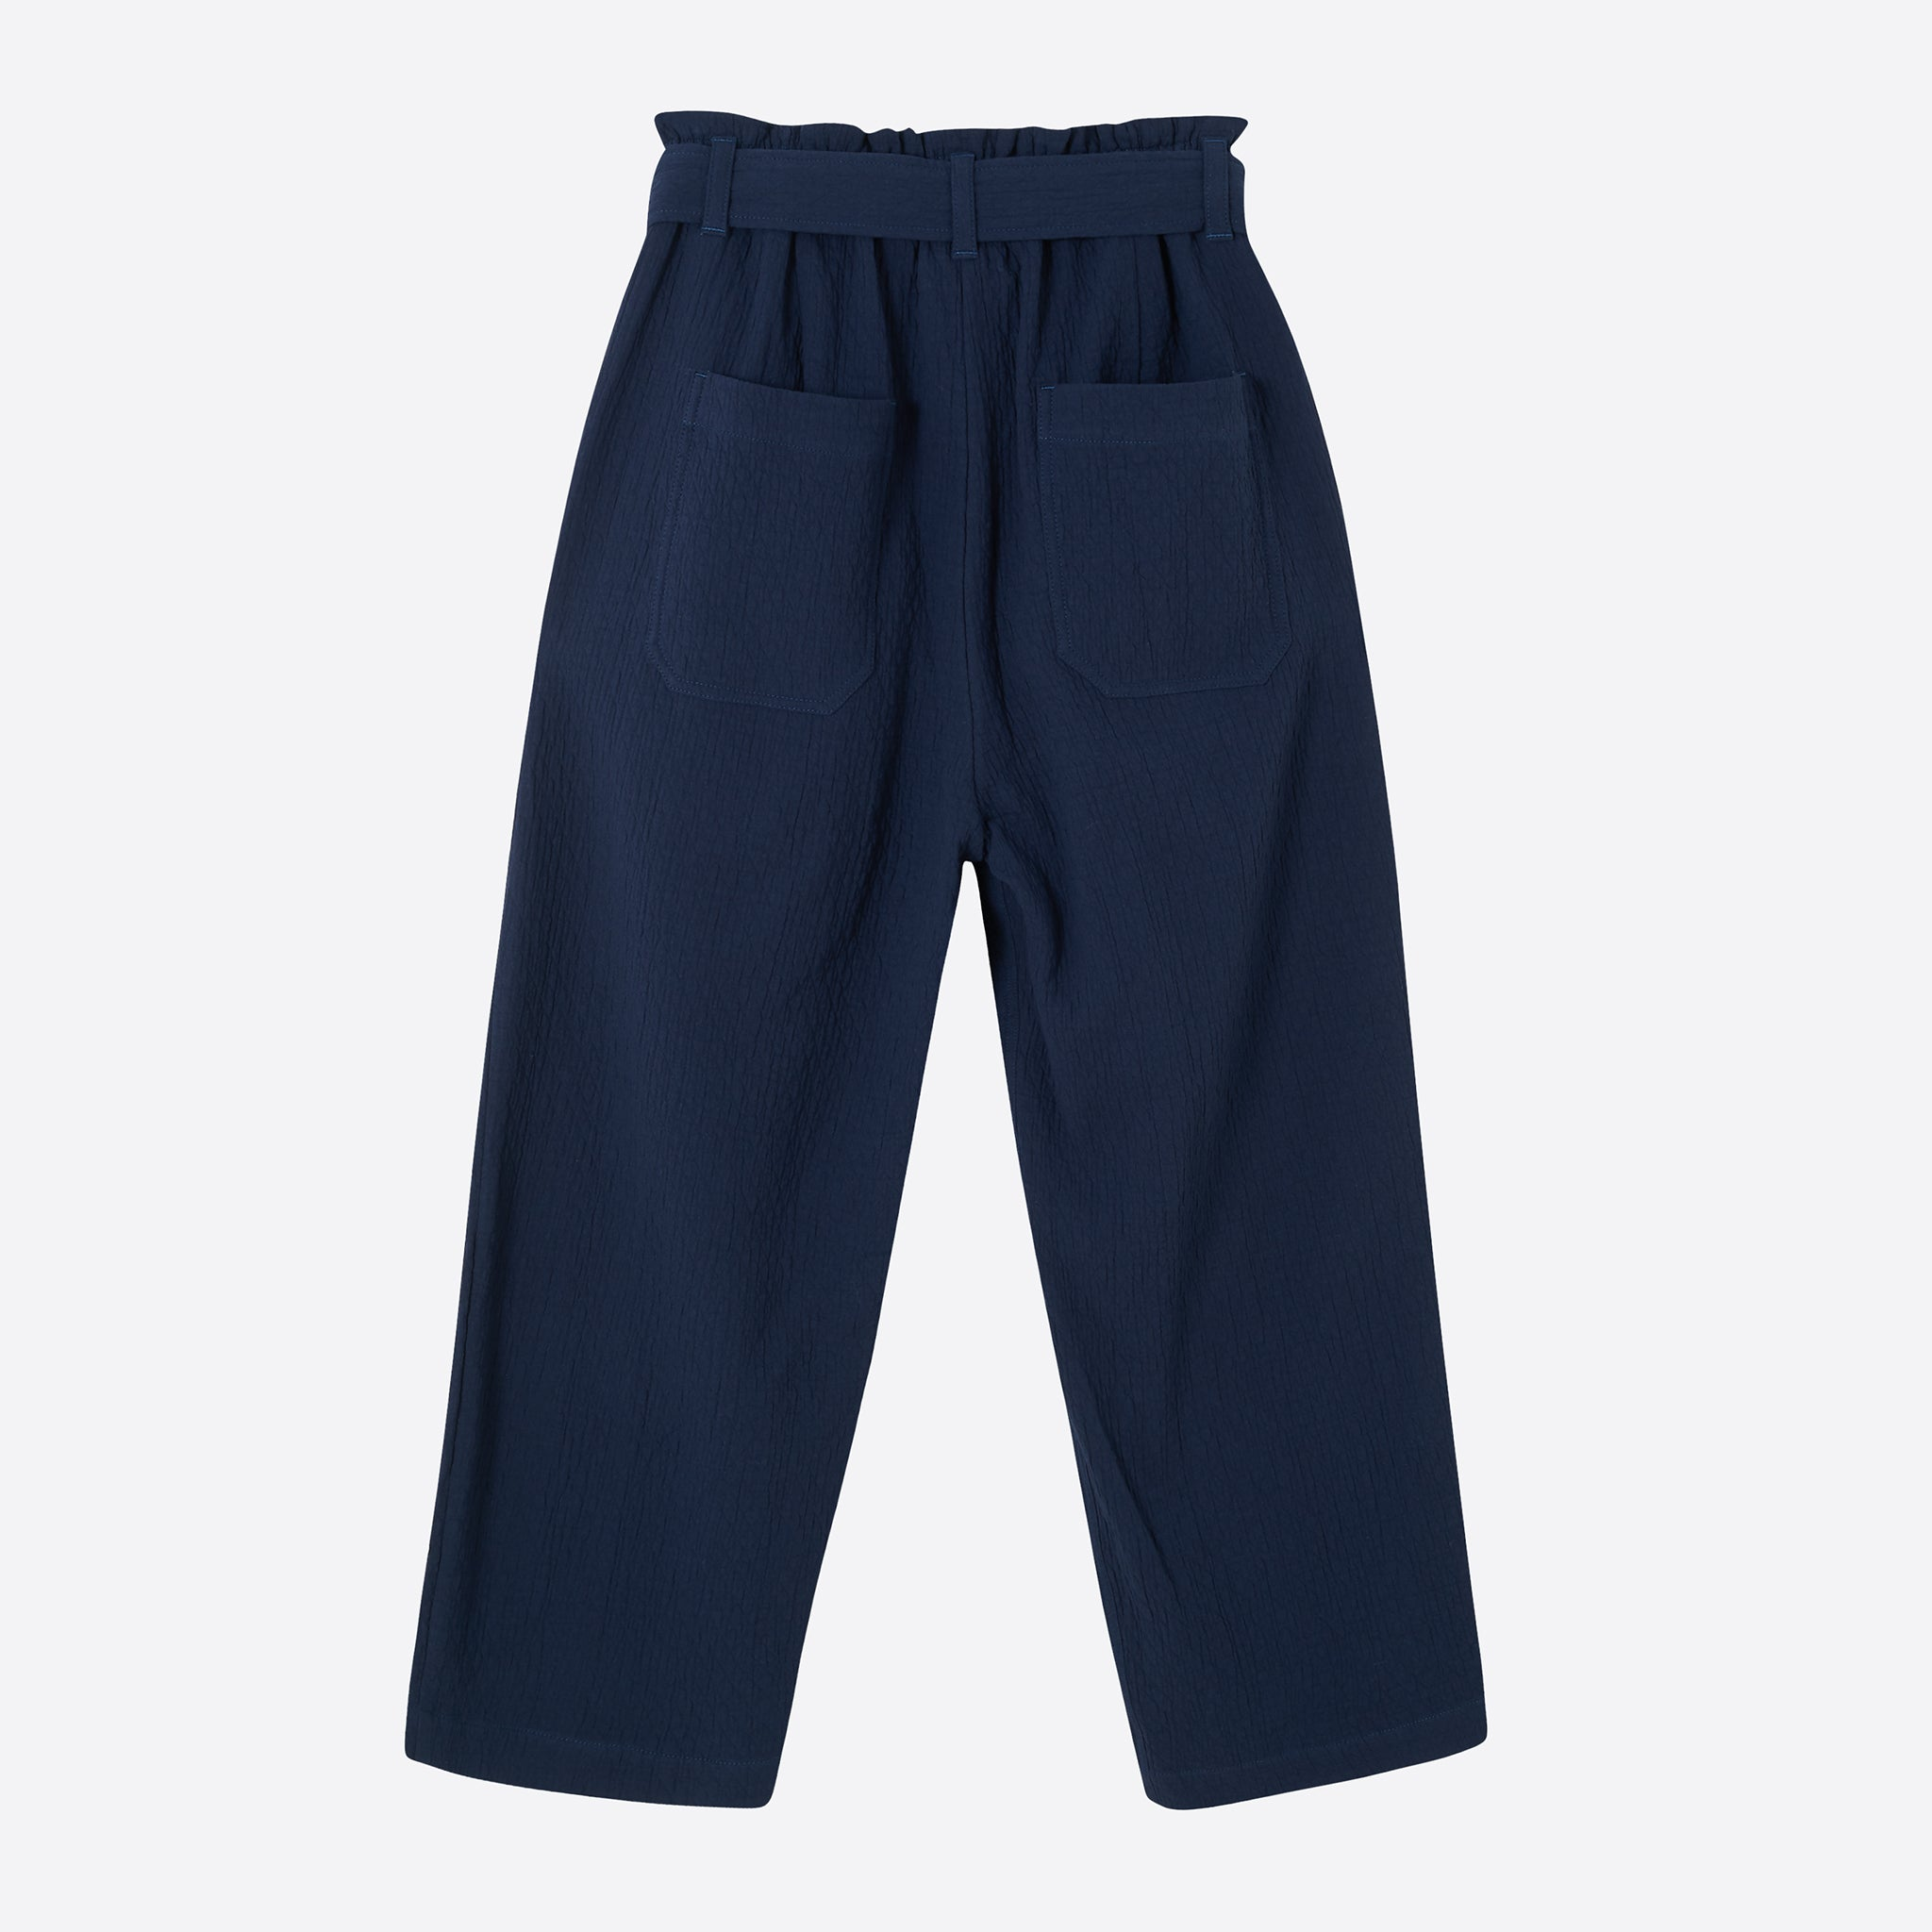 Sideline Malin Trousers in Navy